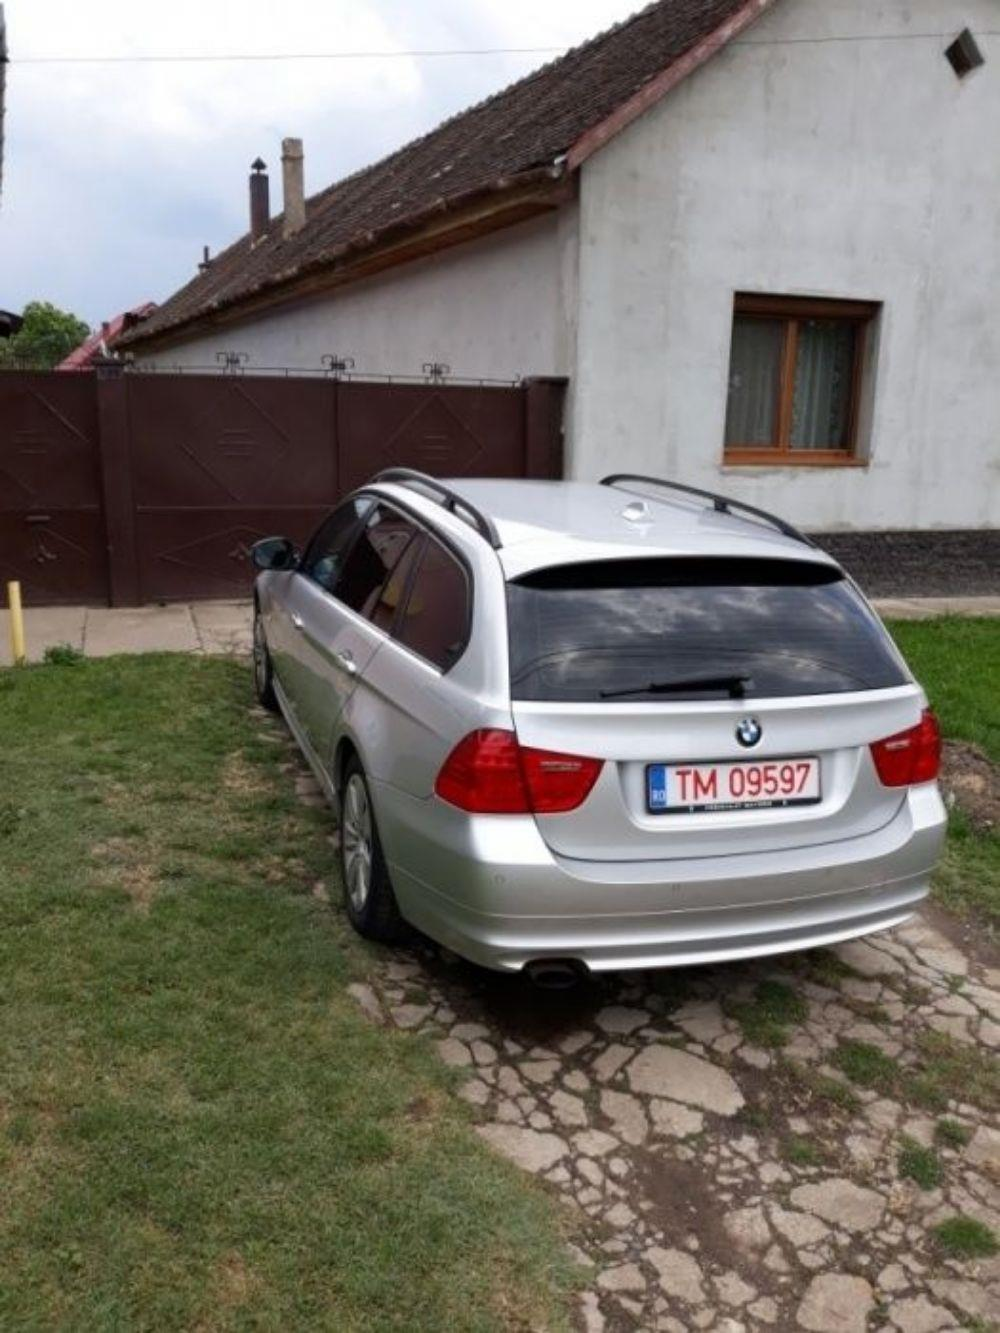 Bmw 2009 euro 5 SCHIMB  - imagine 3